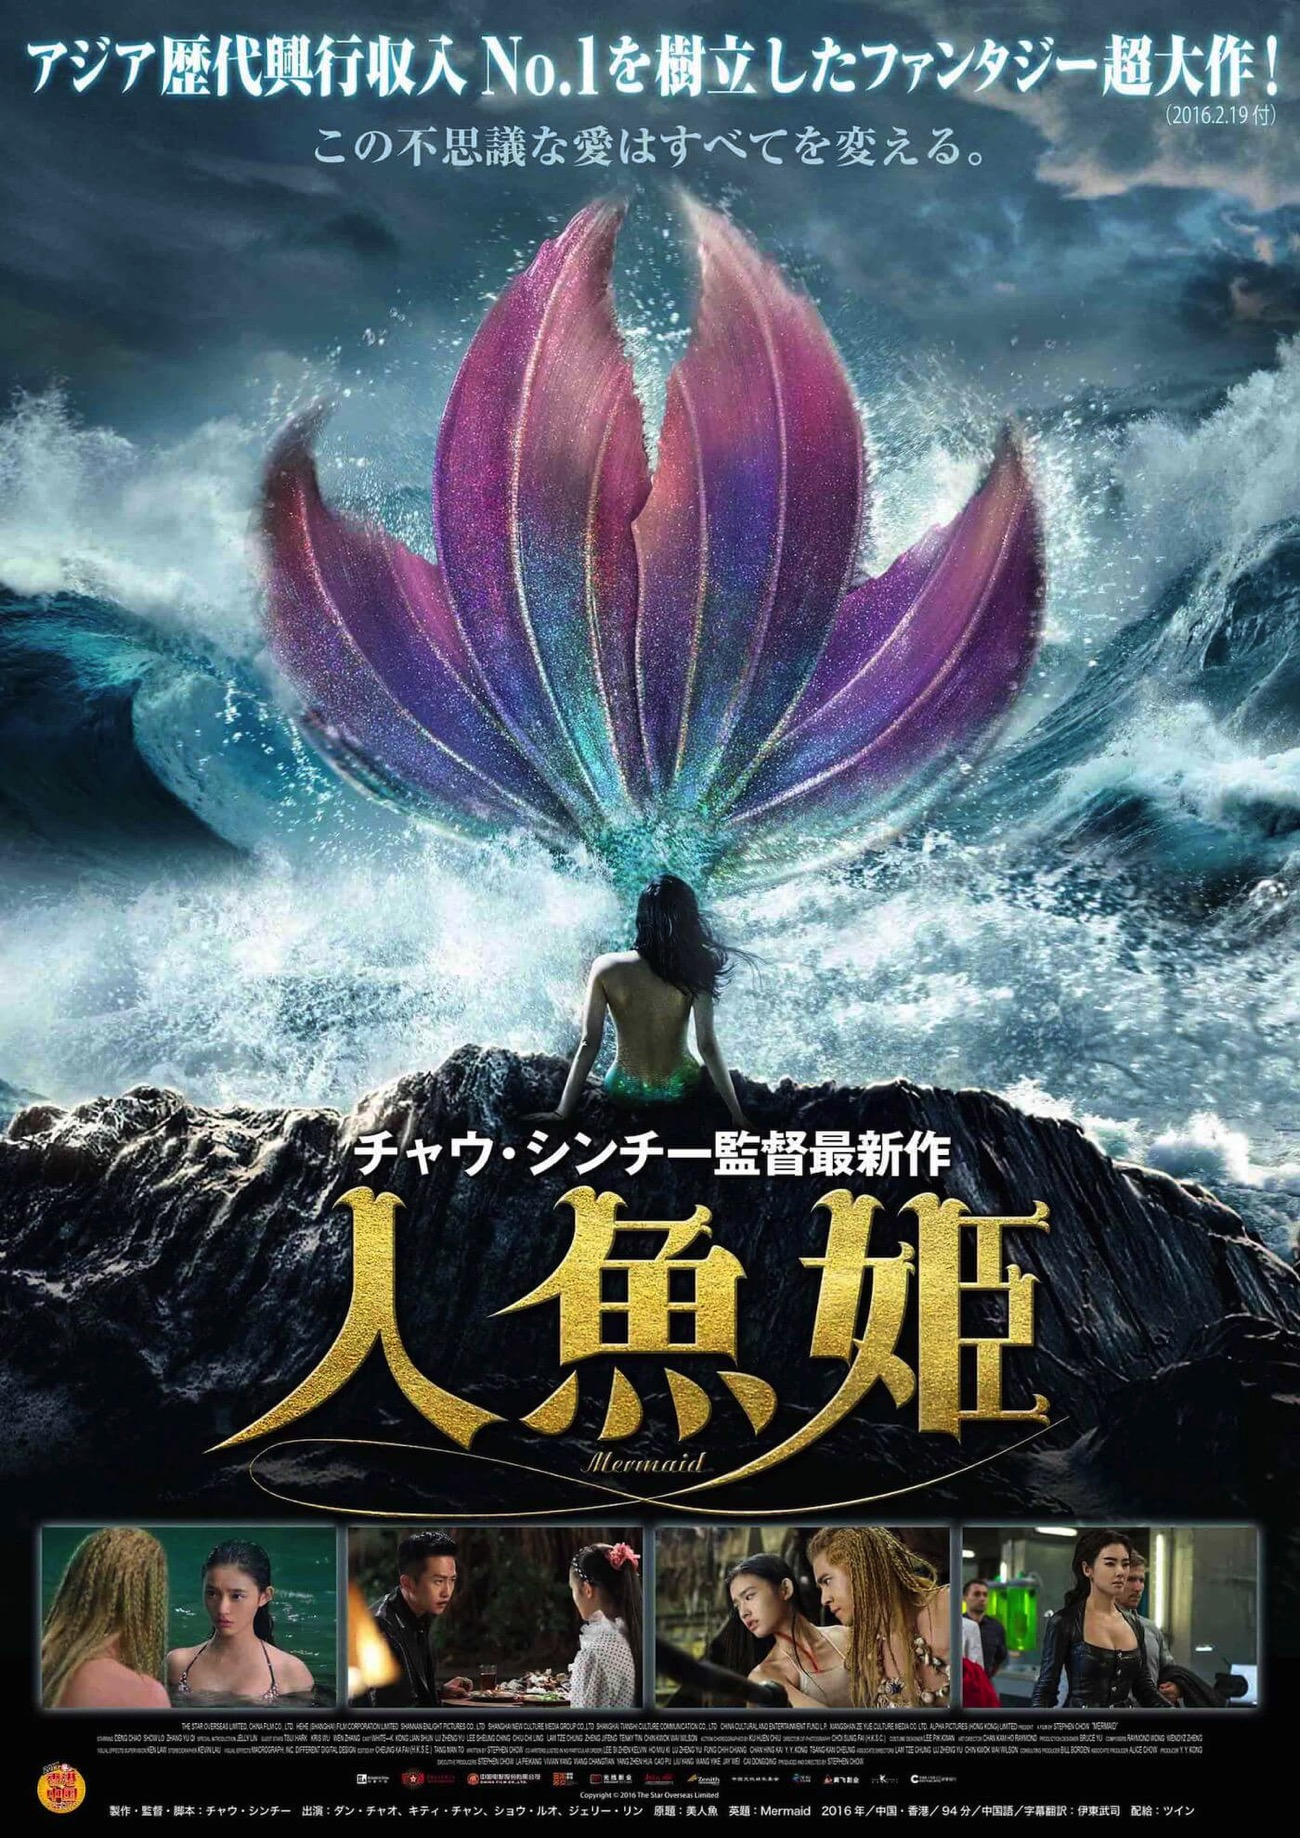 Mermaid jpn keyart